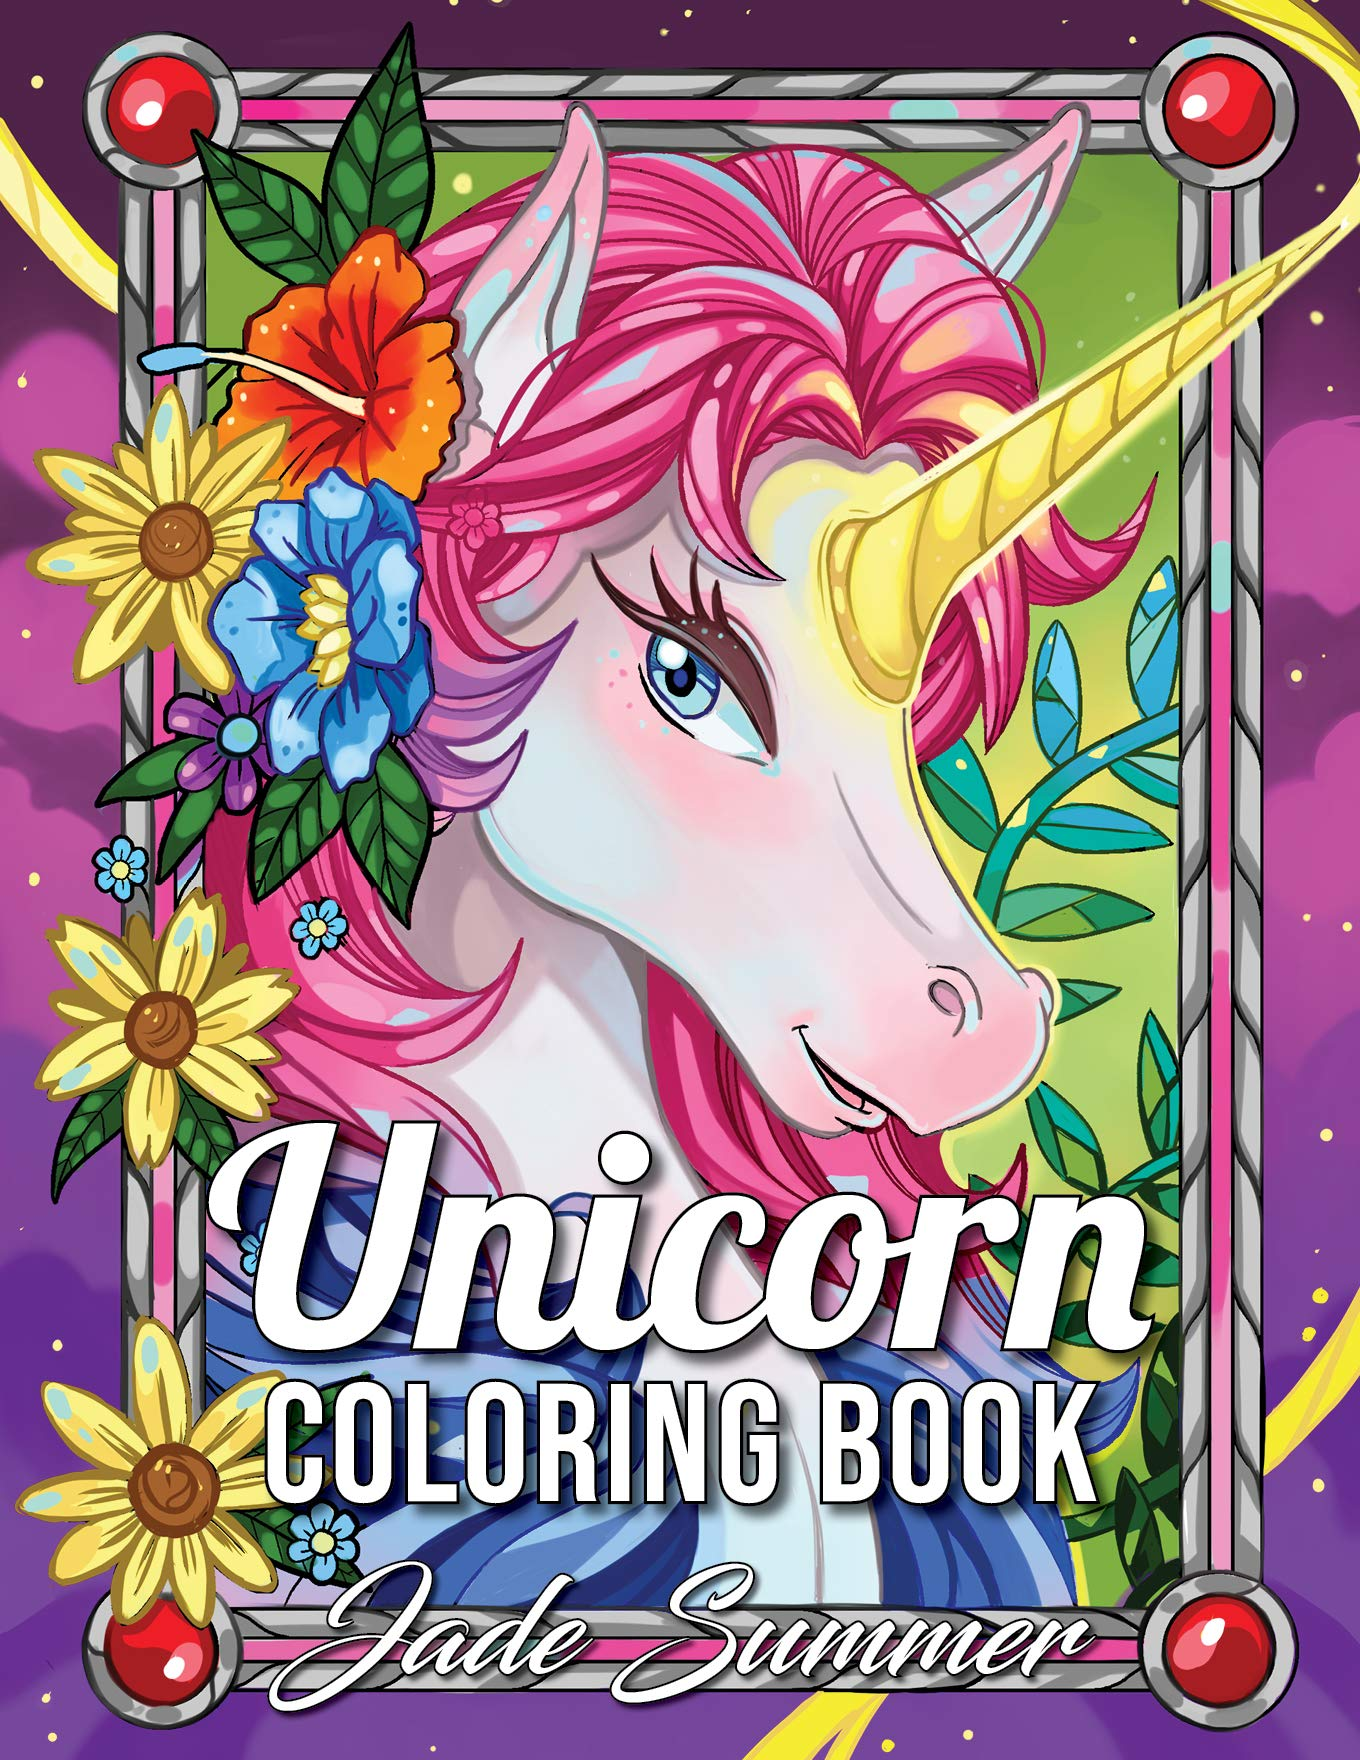 Amazon Com Unicorn Coloring Book An Adult Coloring Book With Magical Animals Cute Princesses And Fantasy Scenes For Relaxation Unicorn Coloring Books 9781979927956 Summer Jade Books